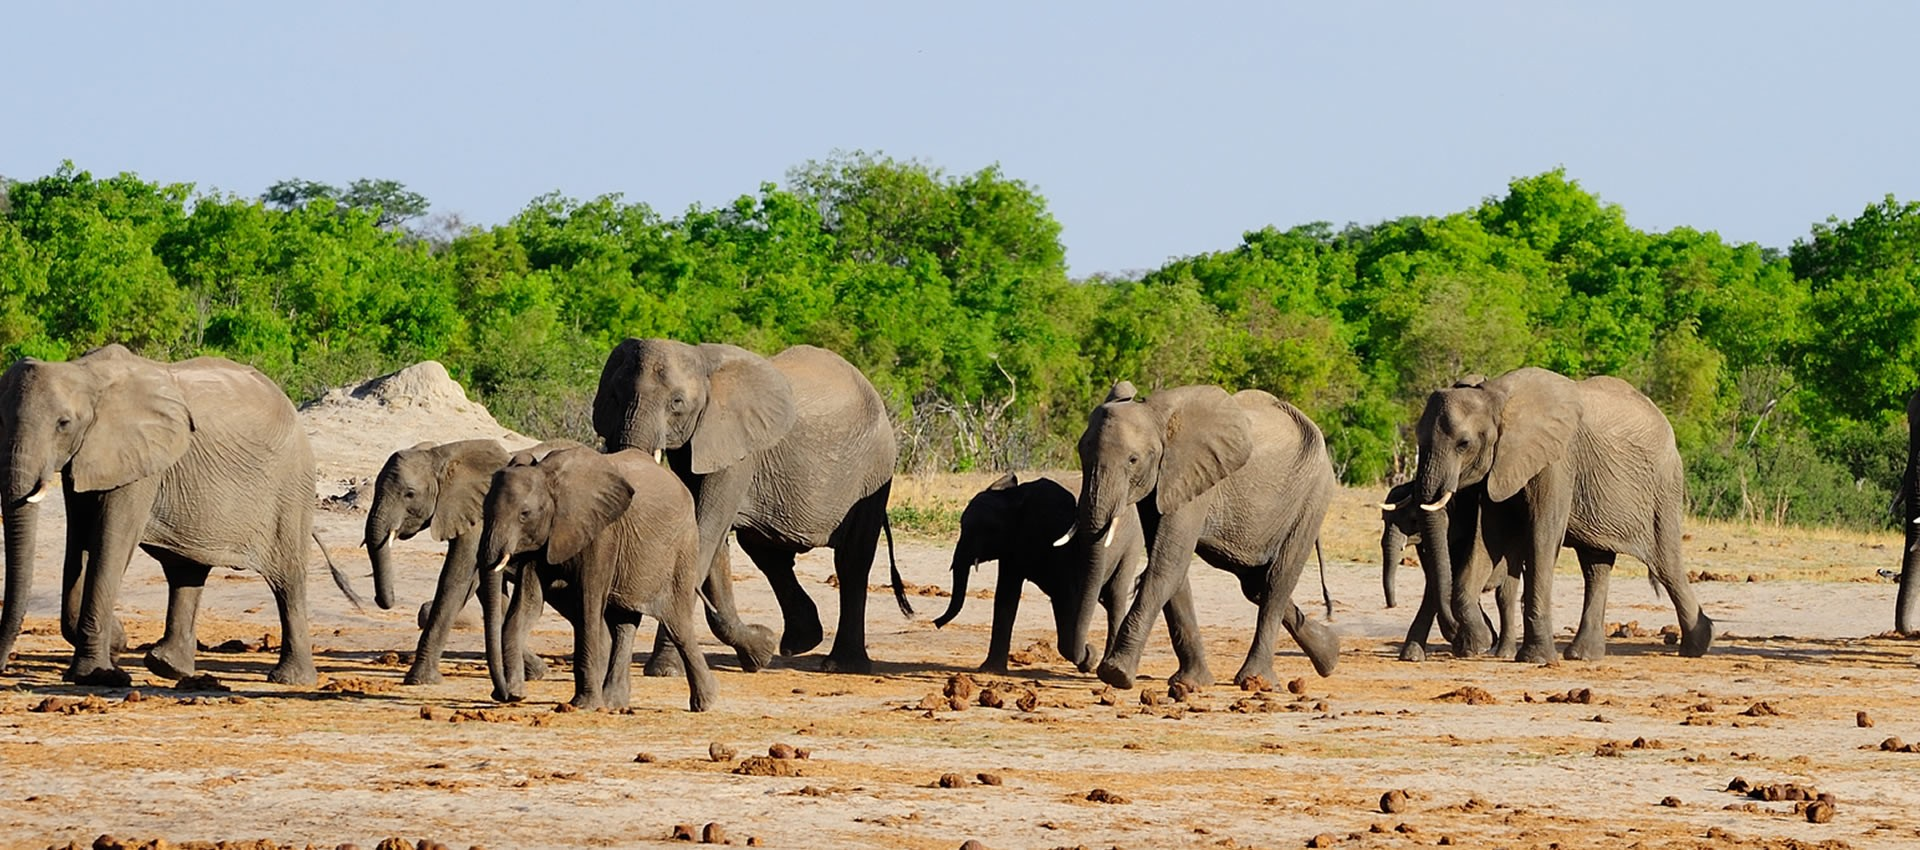 Africa Safaris Tours krugar national park